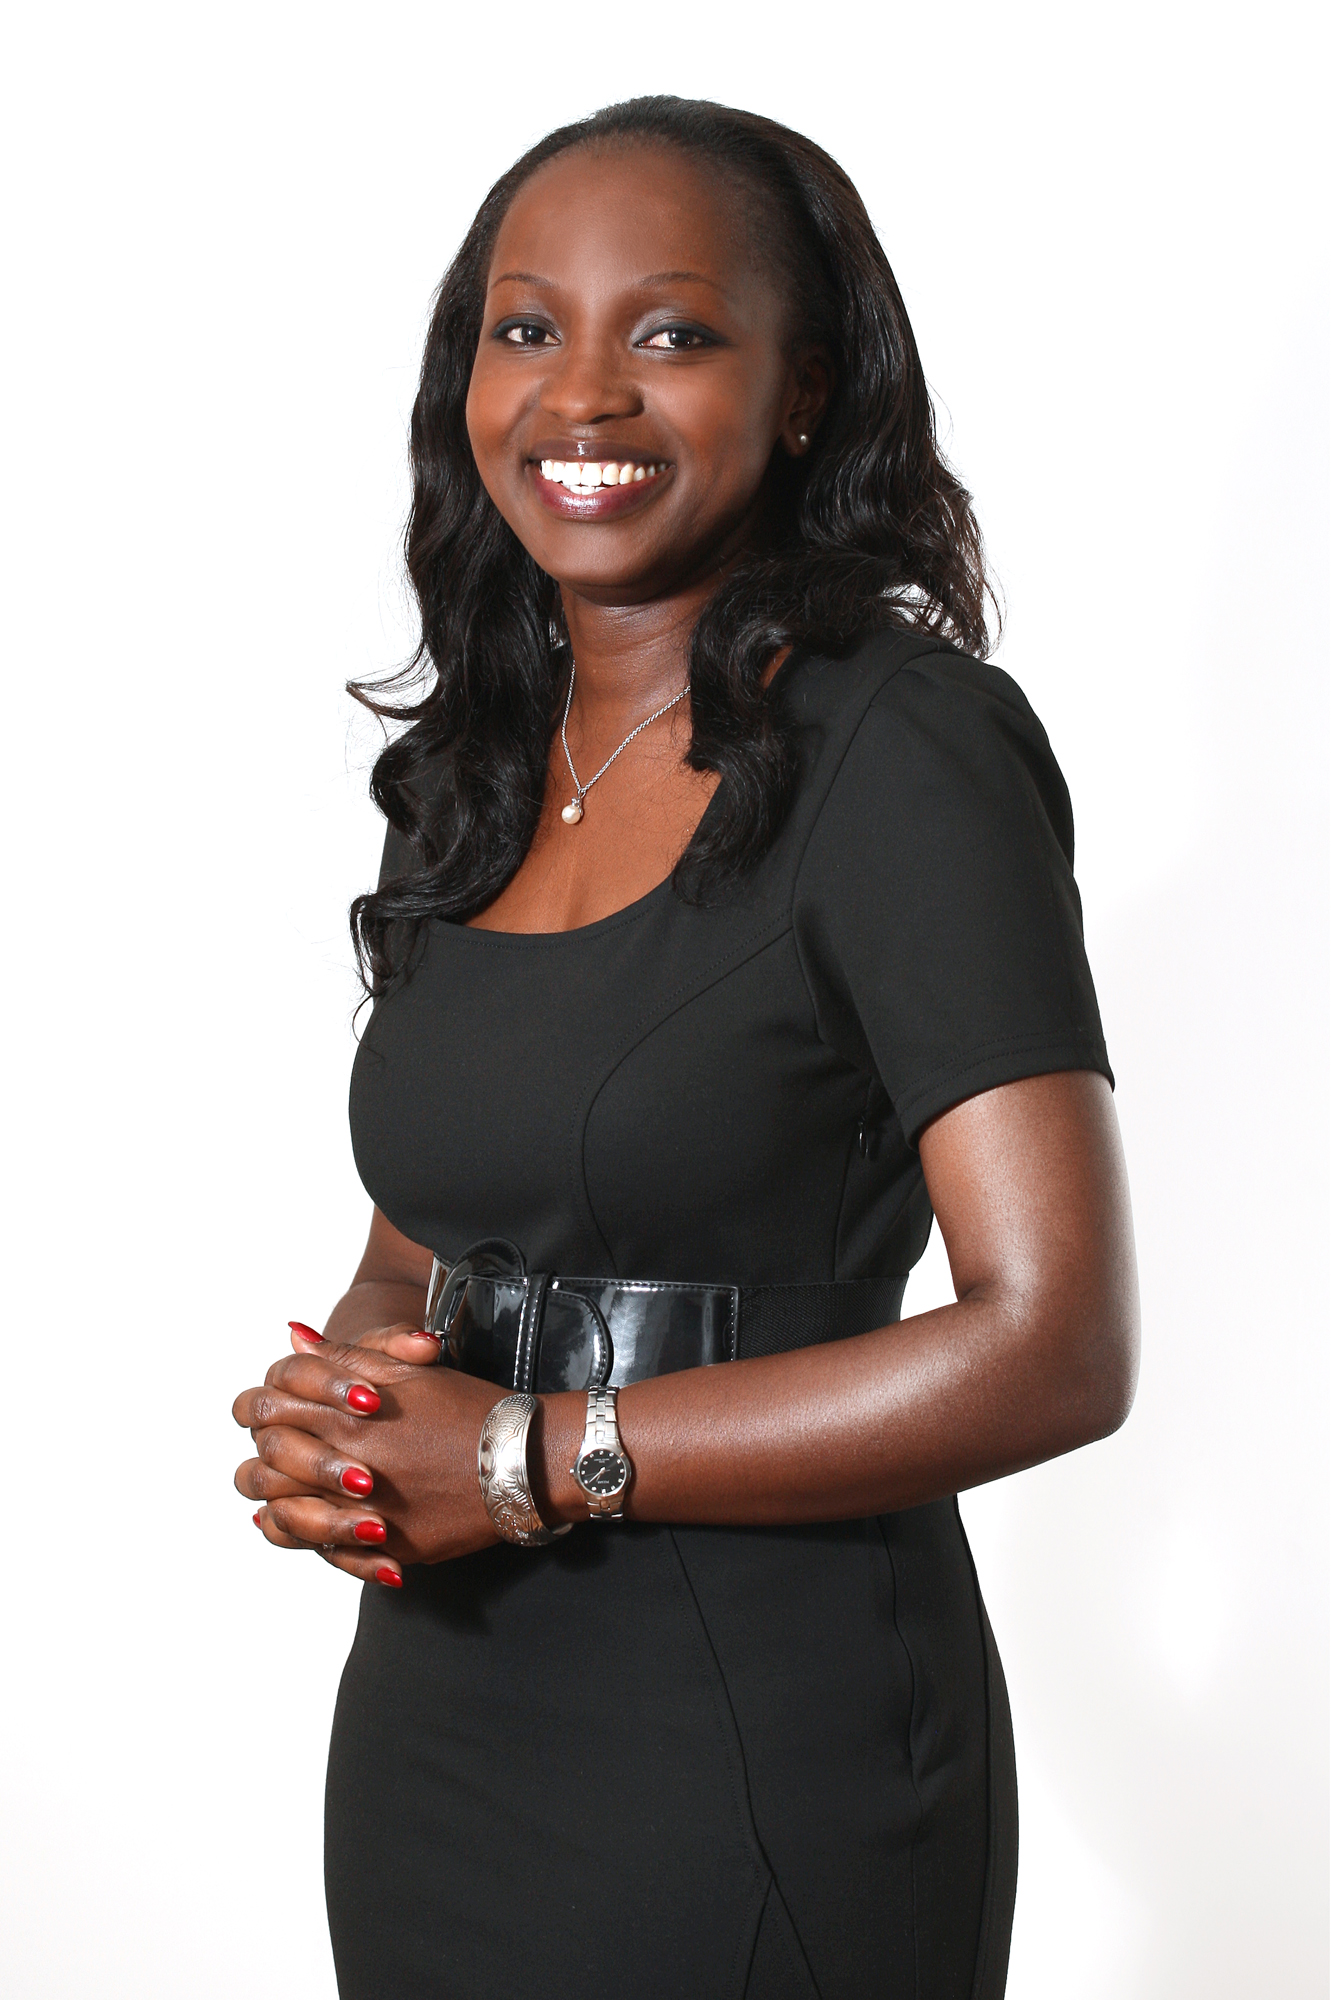 Emma Okenyi, Senior Caseworker at Paragon Law